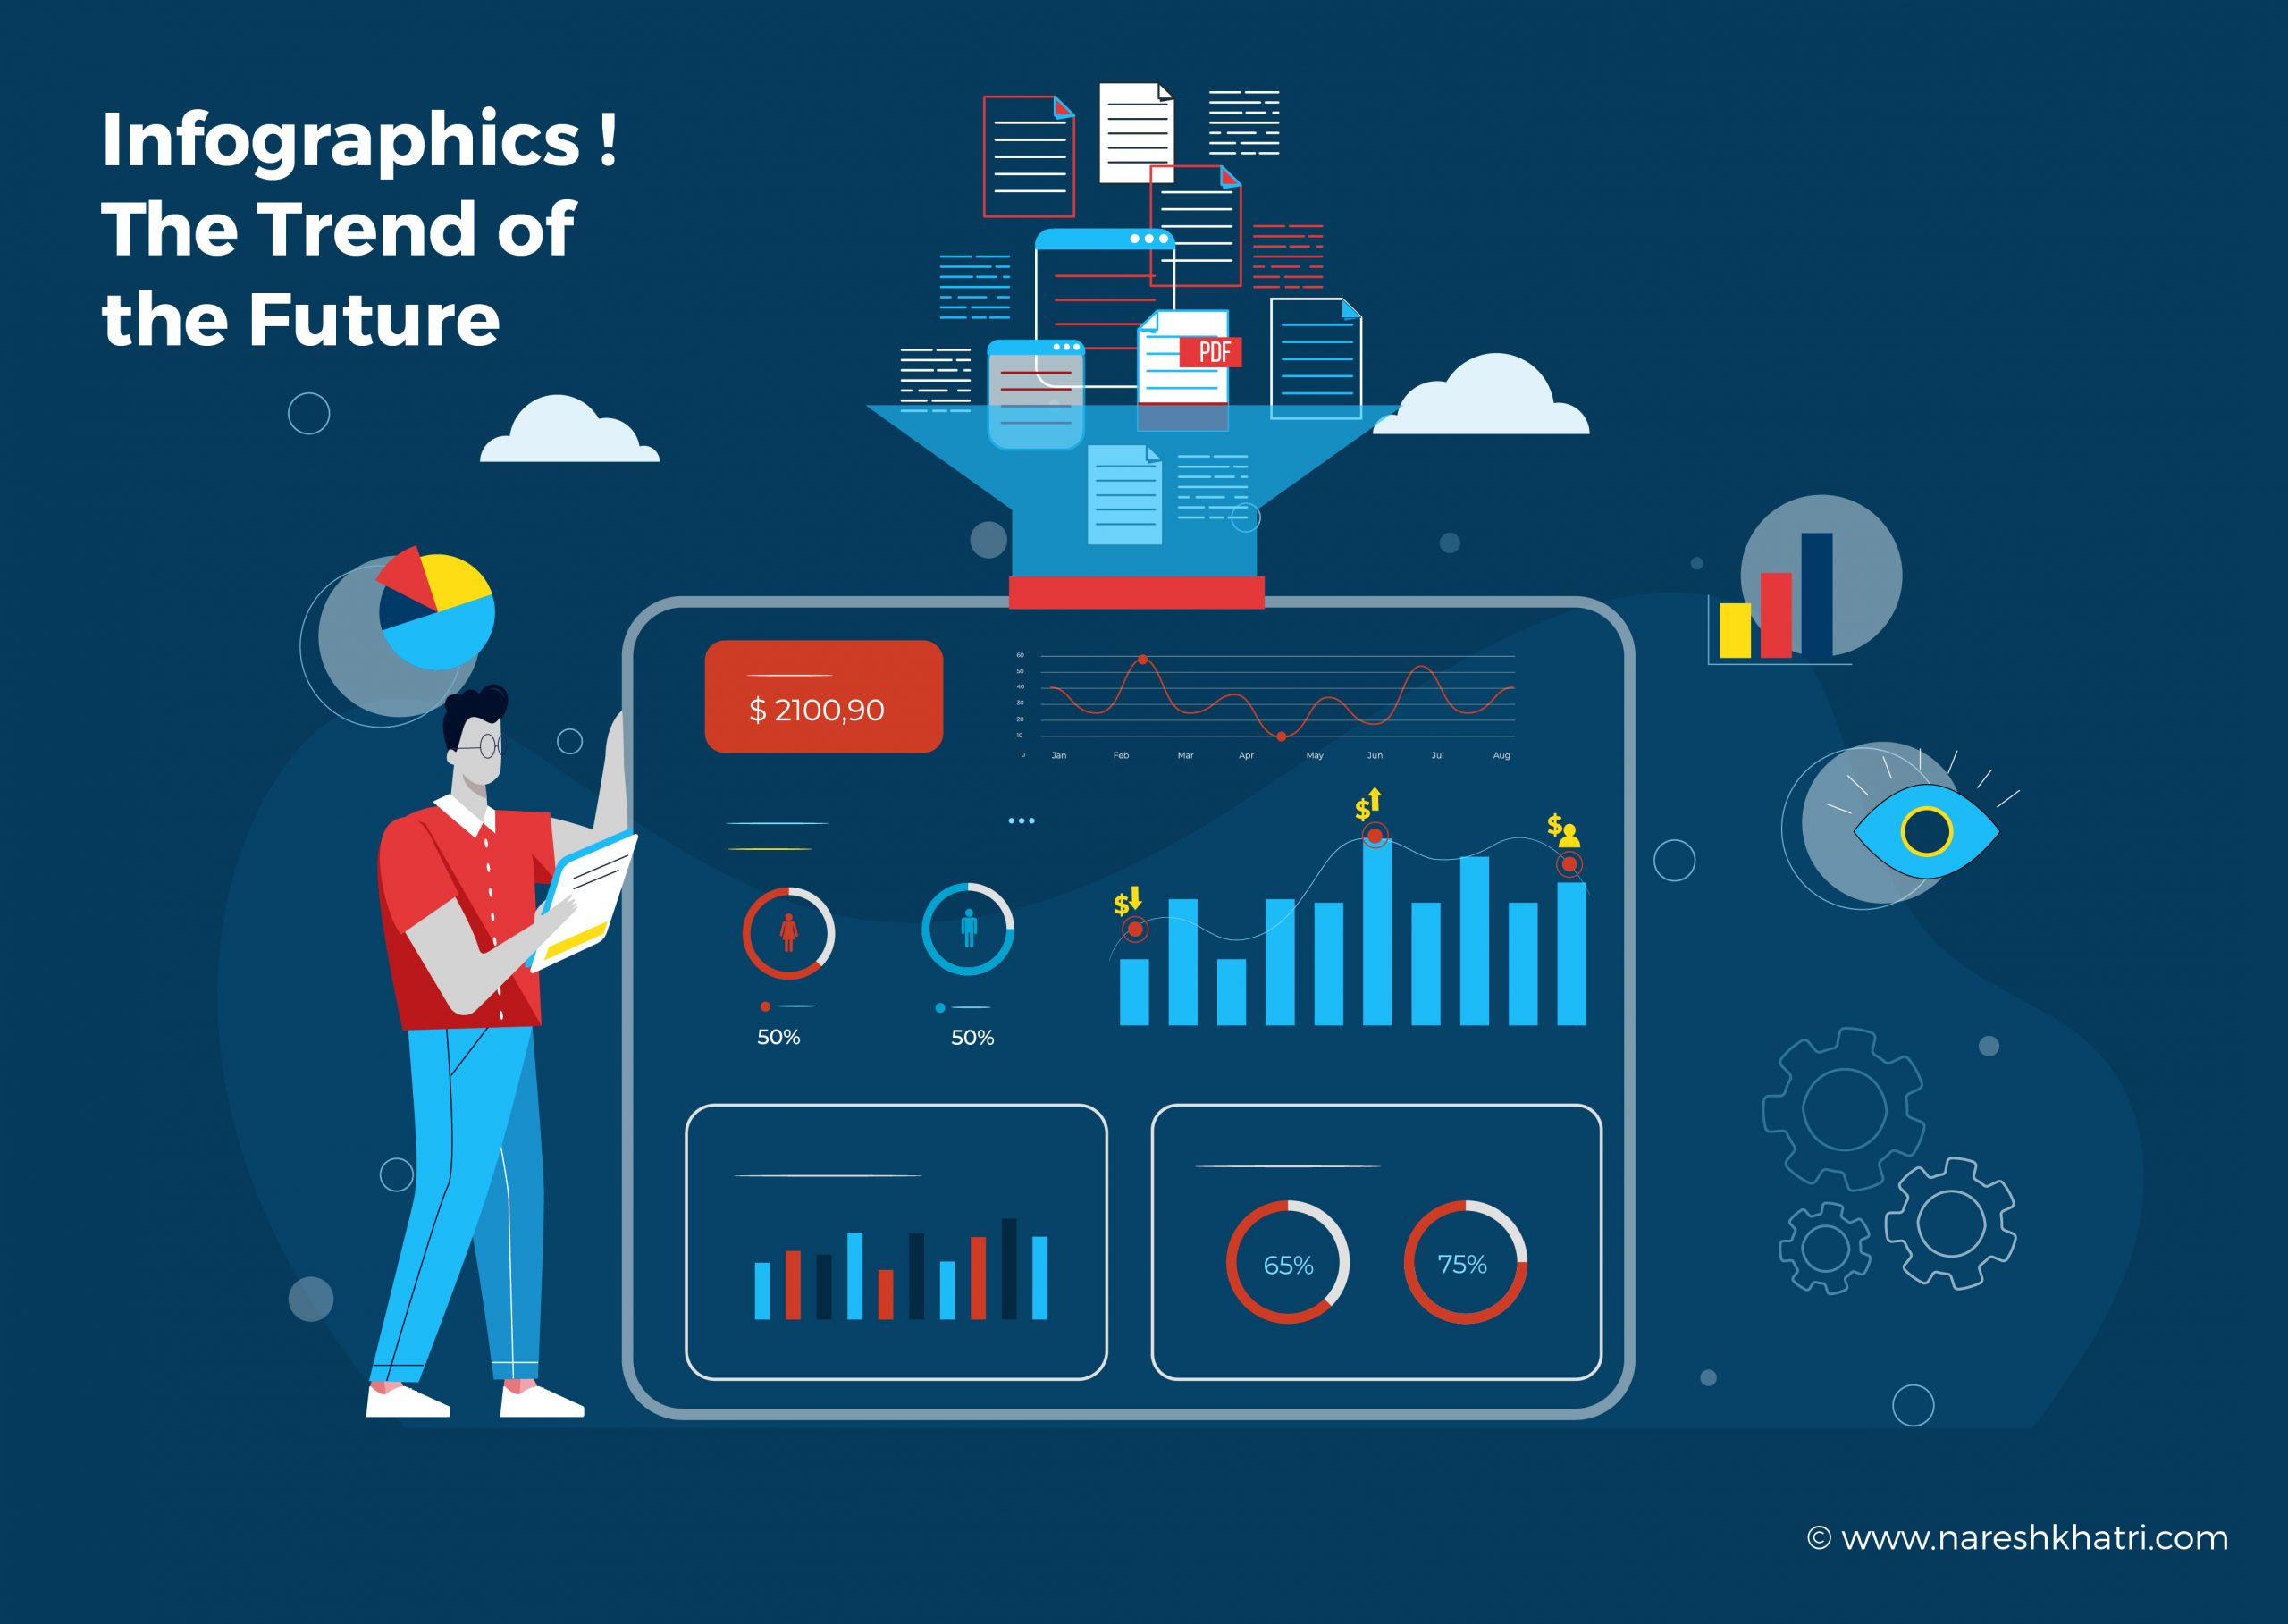 Infographics ! The Trend of the Future